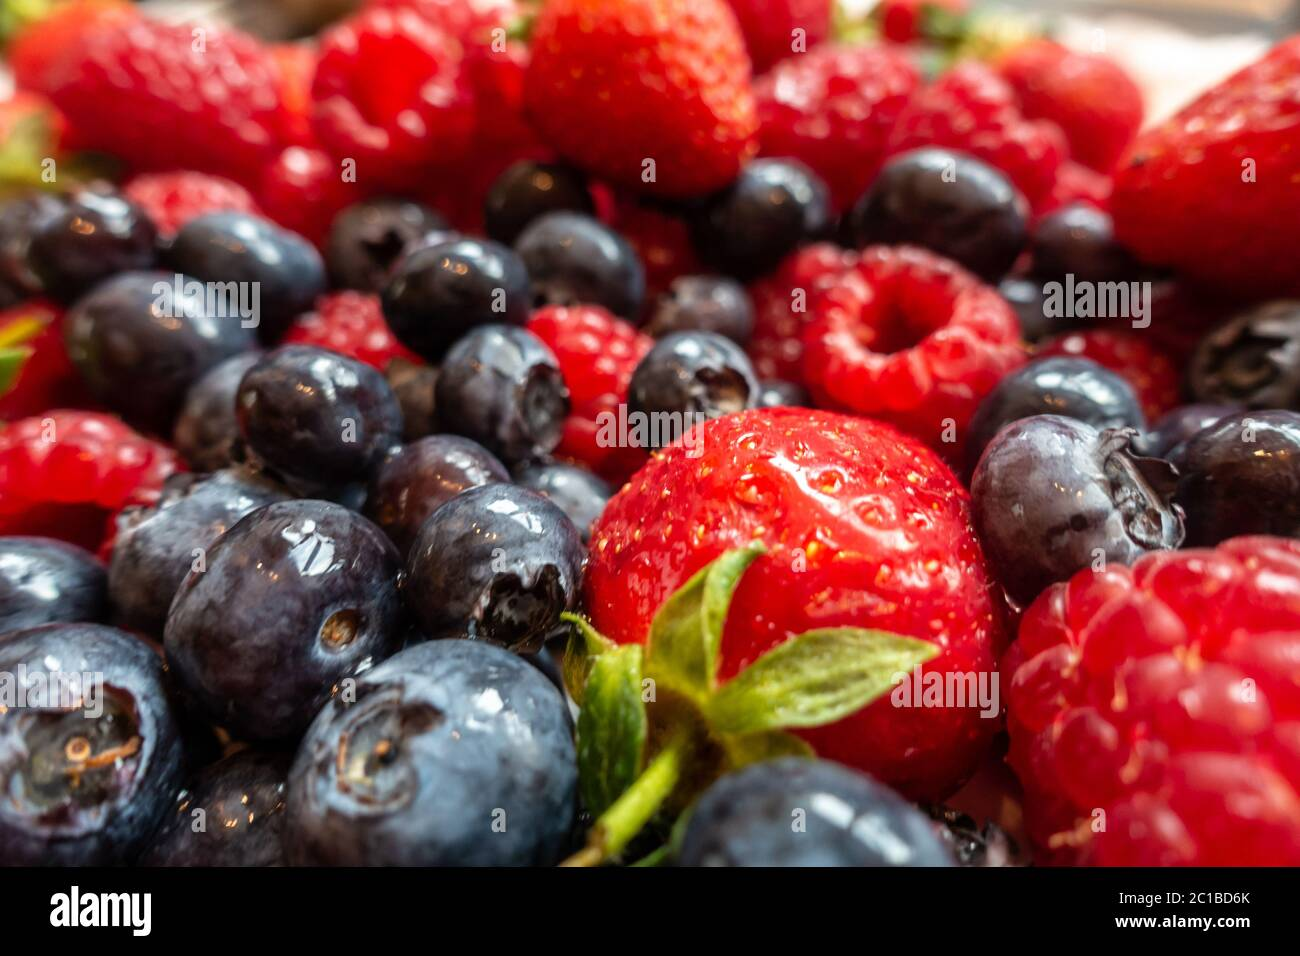 close-up-view-of-soft-summer-fruits-strawberries-raspberries-and-blueberries-2C1BD6K.jpg